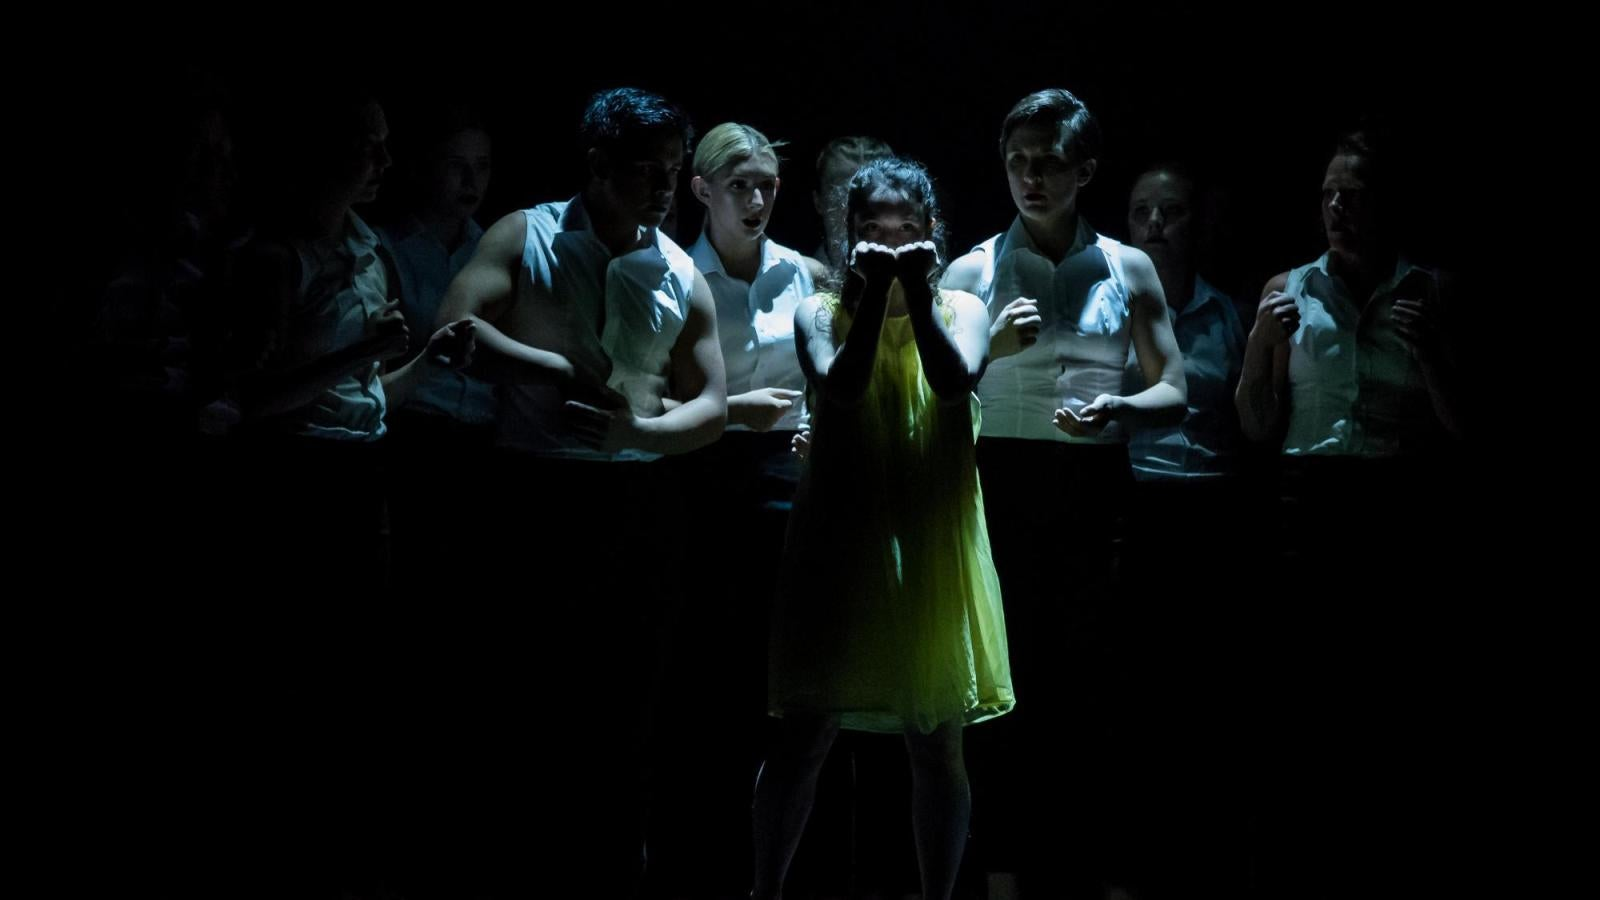 One dancer in yellow clenches her fists while several others surround her in business attire